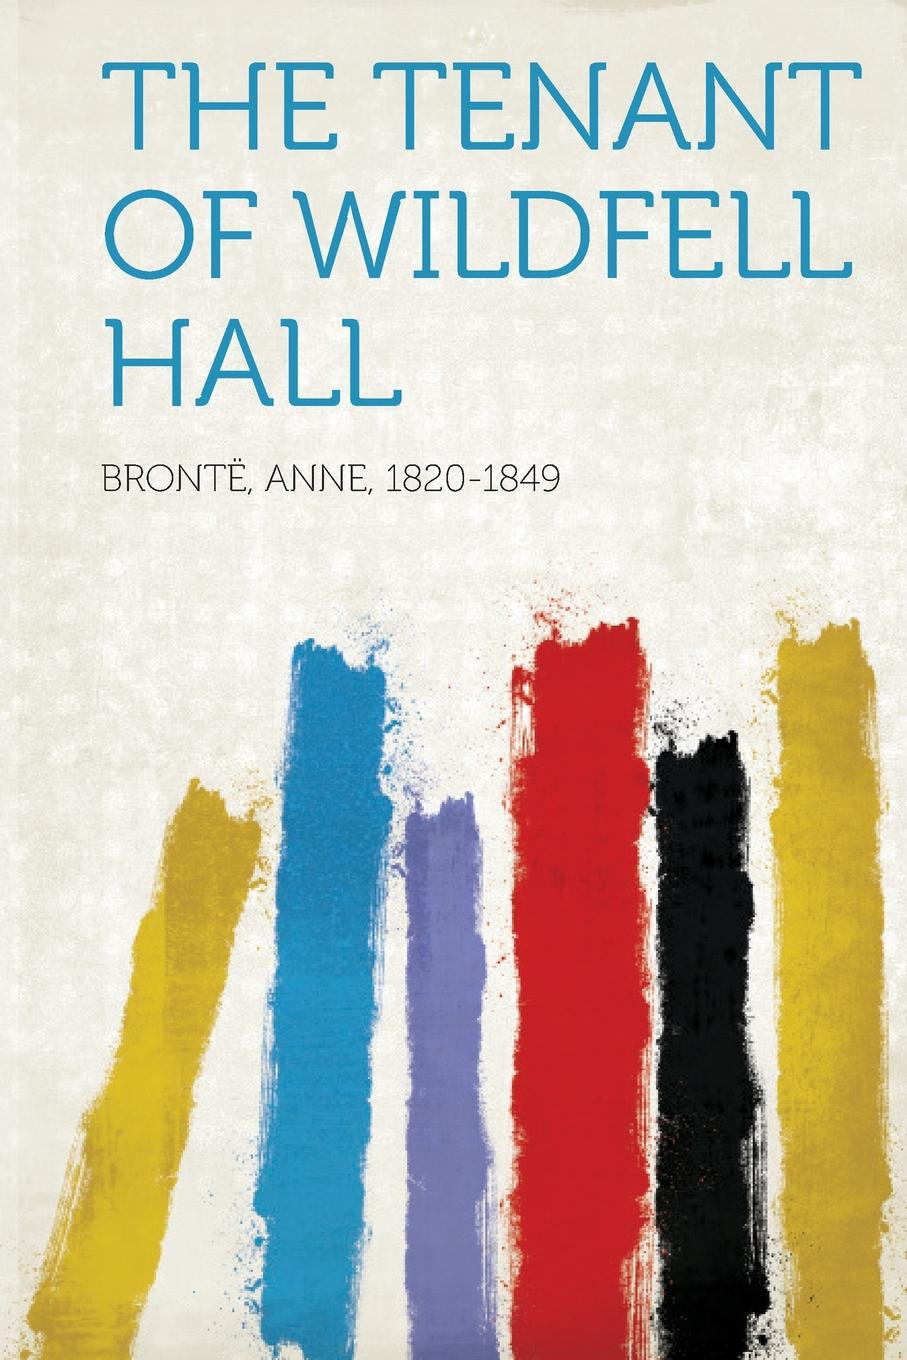 Bronte Anne 1820-1849 The Tenant of Wildfell Hall